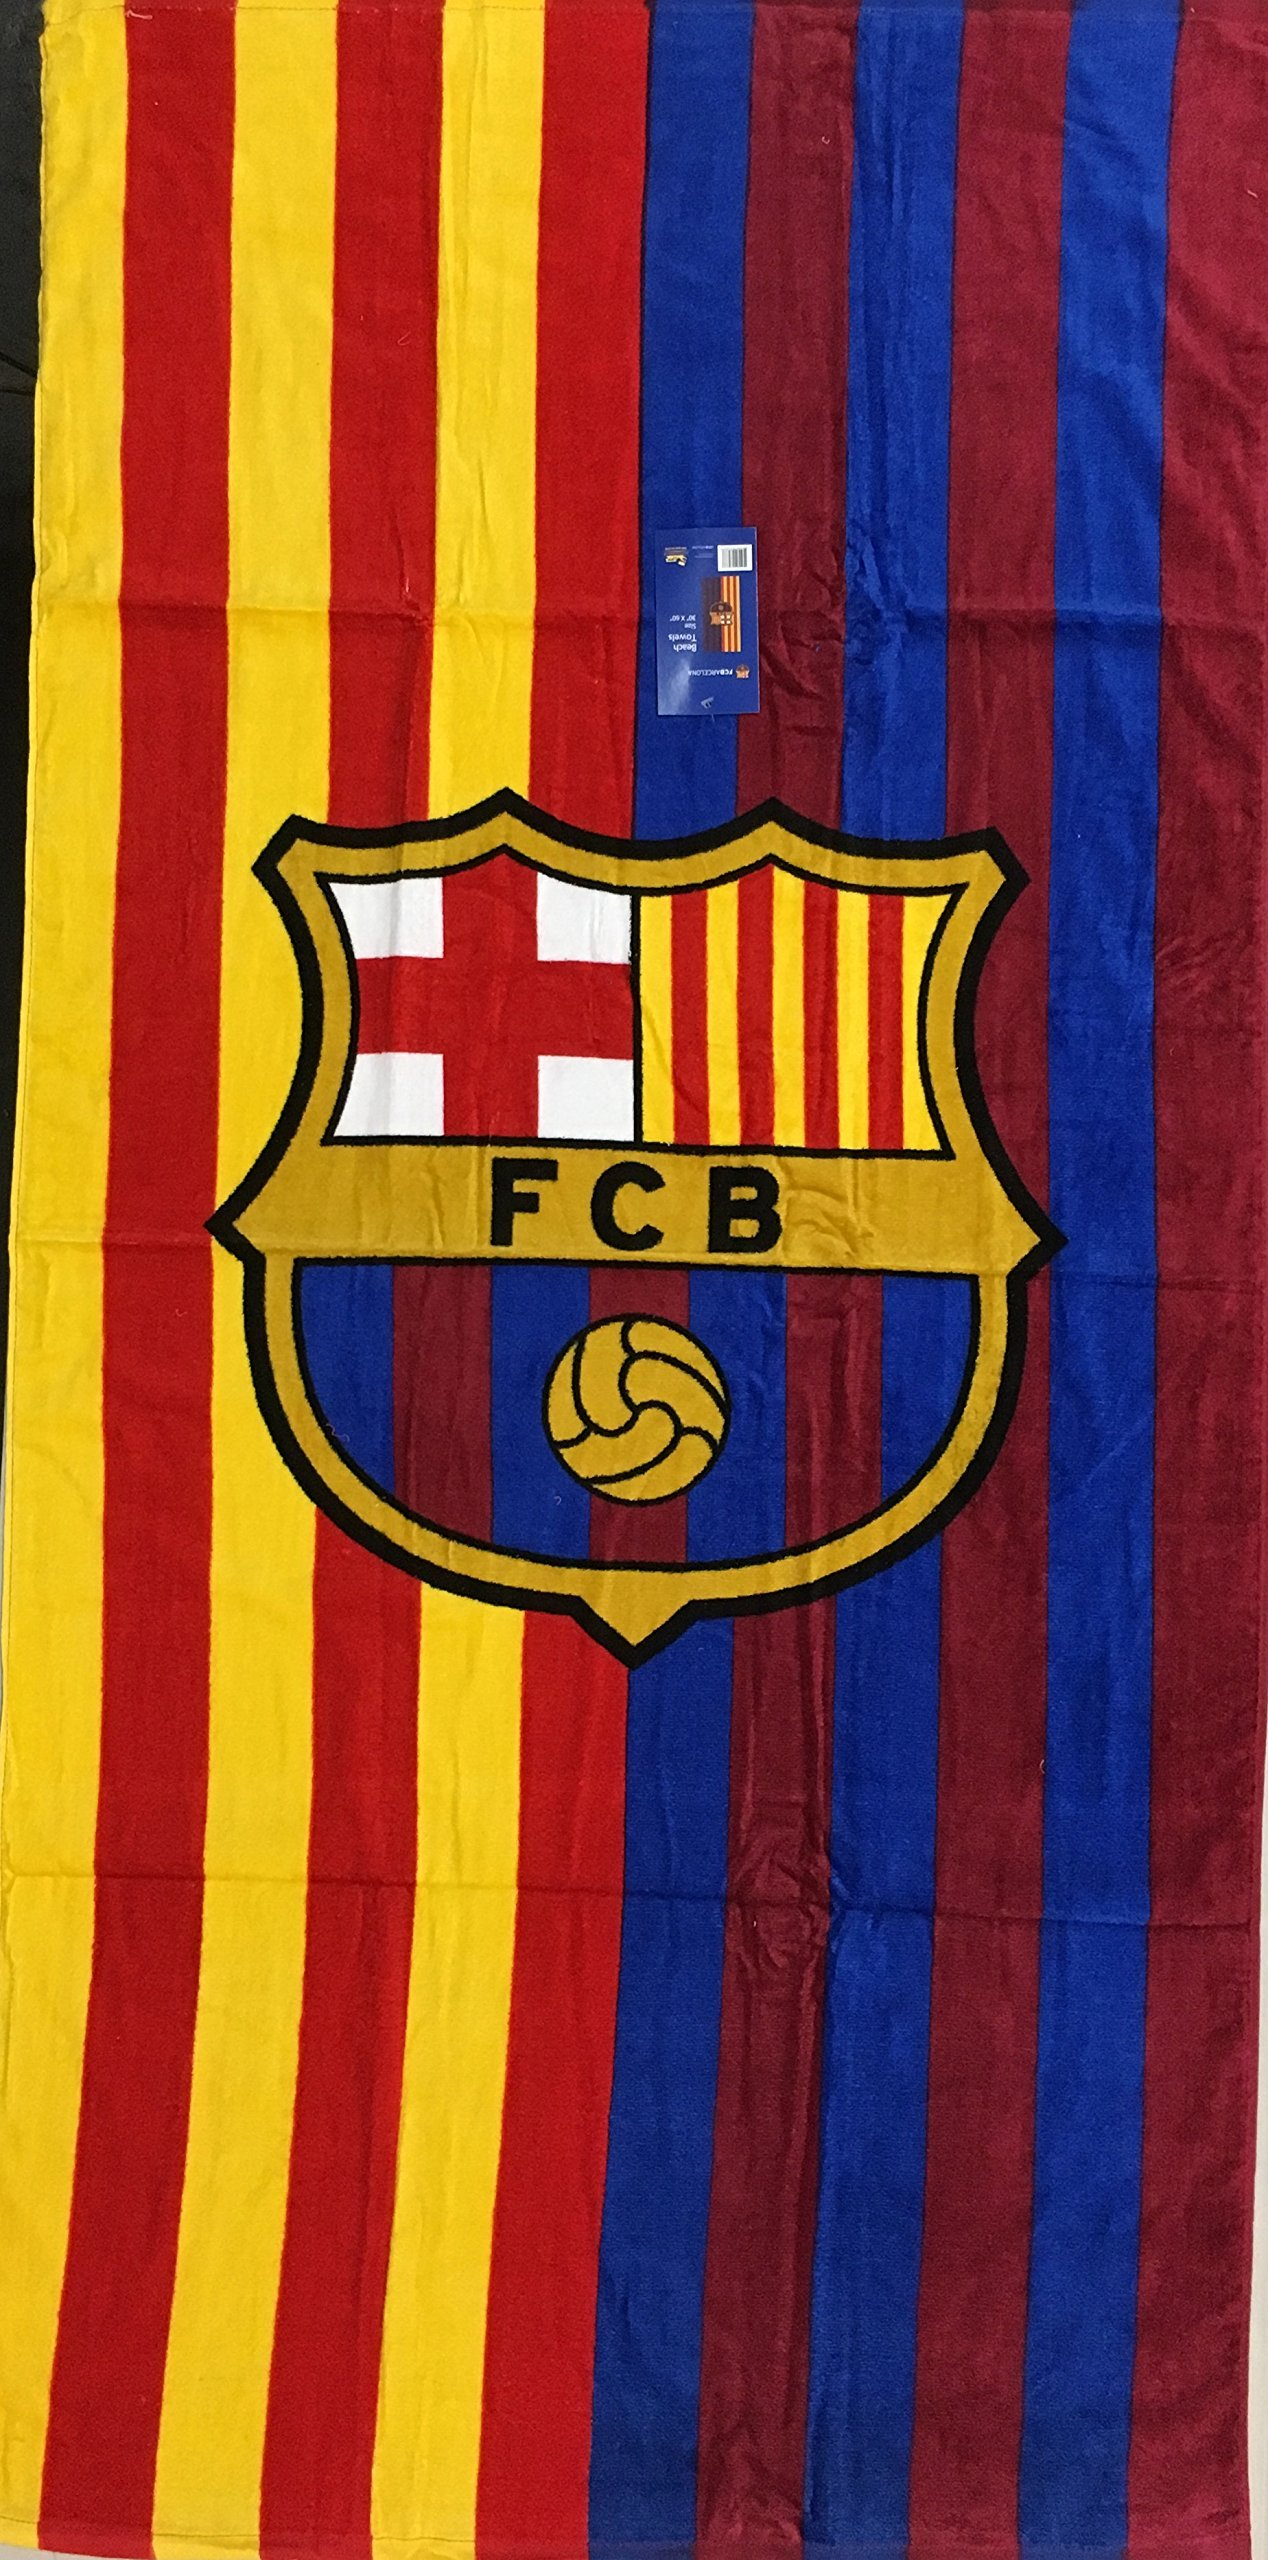 226385f9ad6a0 MES QUE UN CLUB FC Barcelona Soccer Team Two Tone Beach Towel